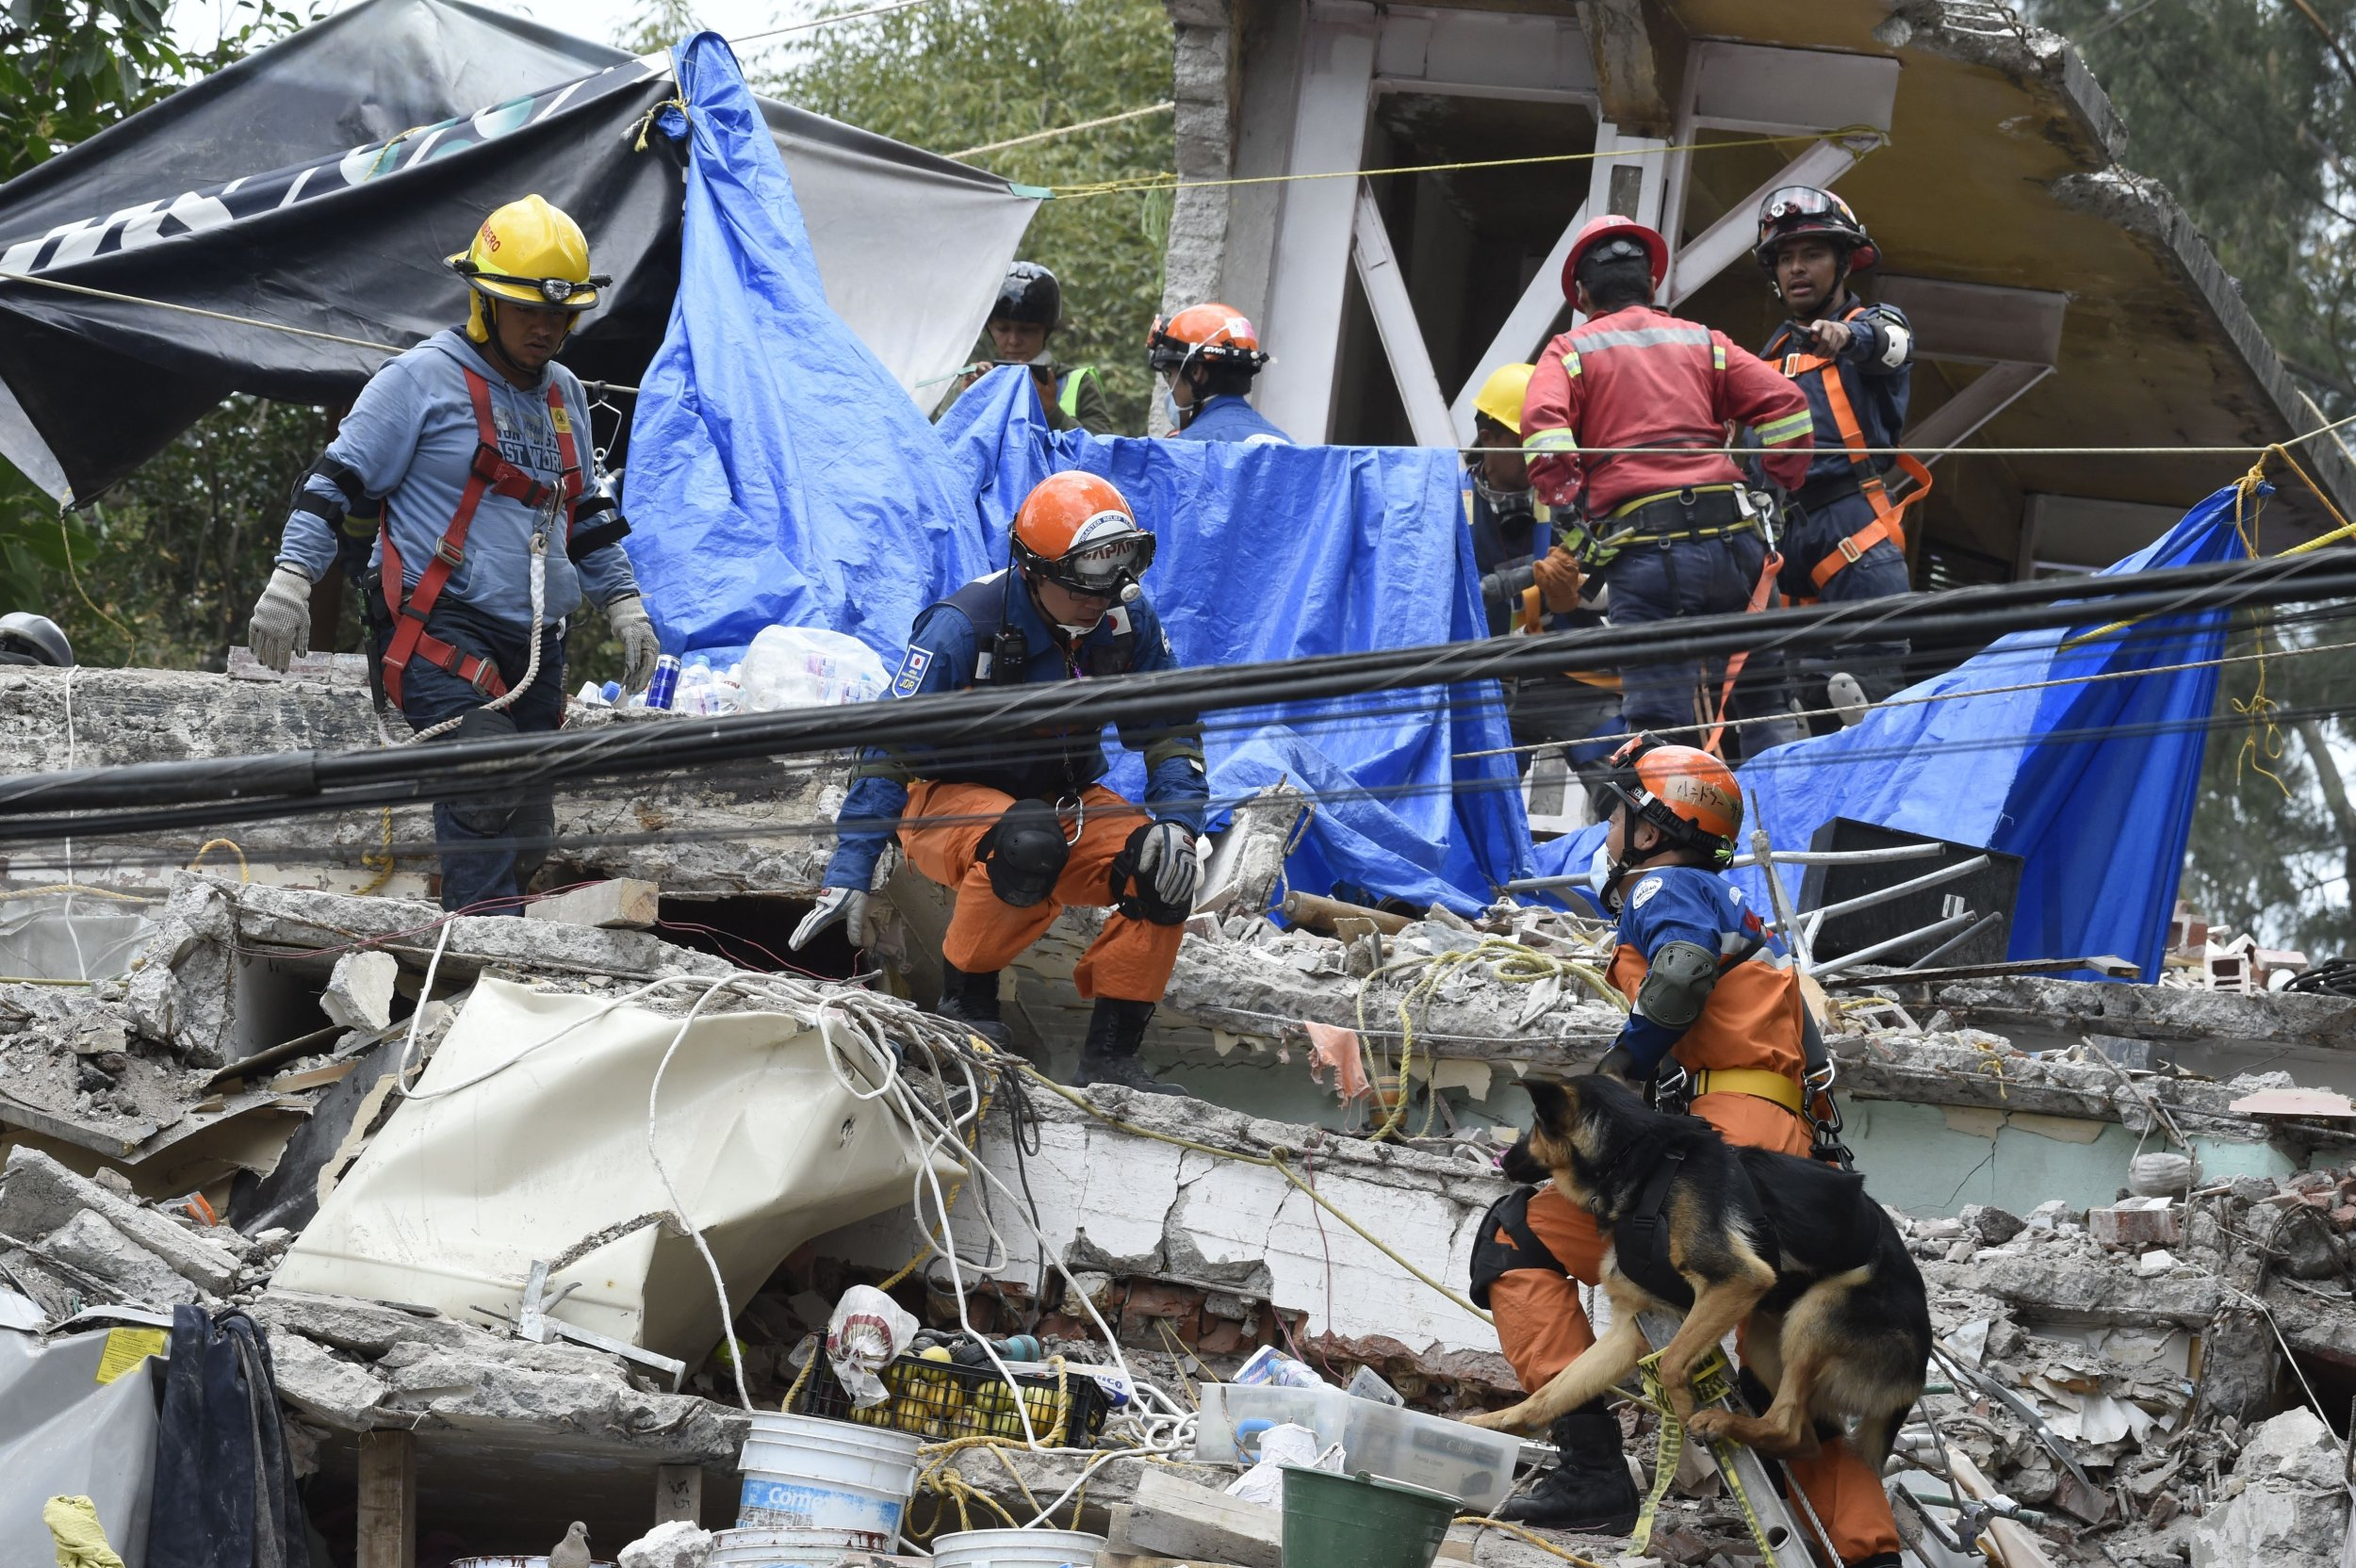 The impact of earthquakes on human activities